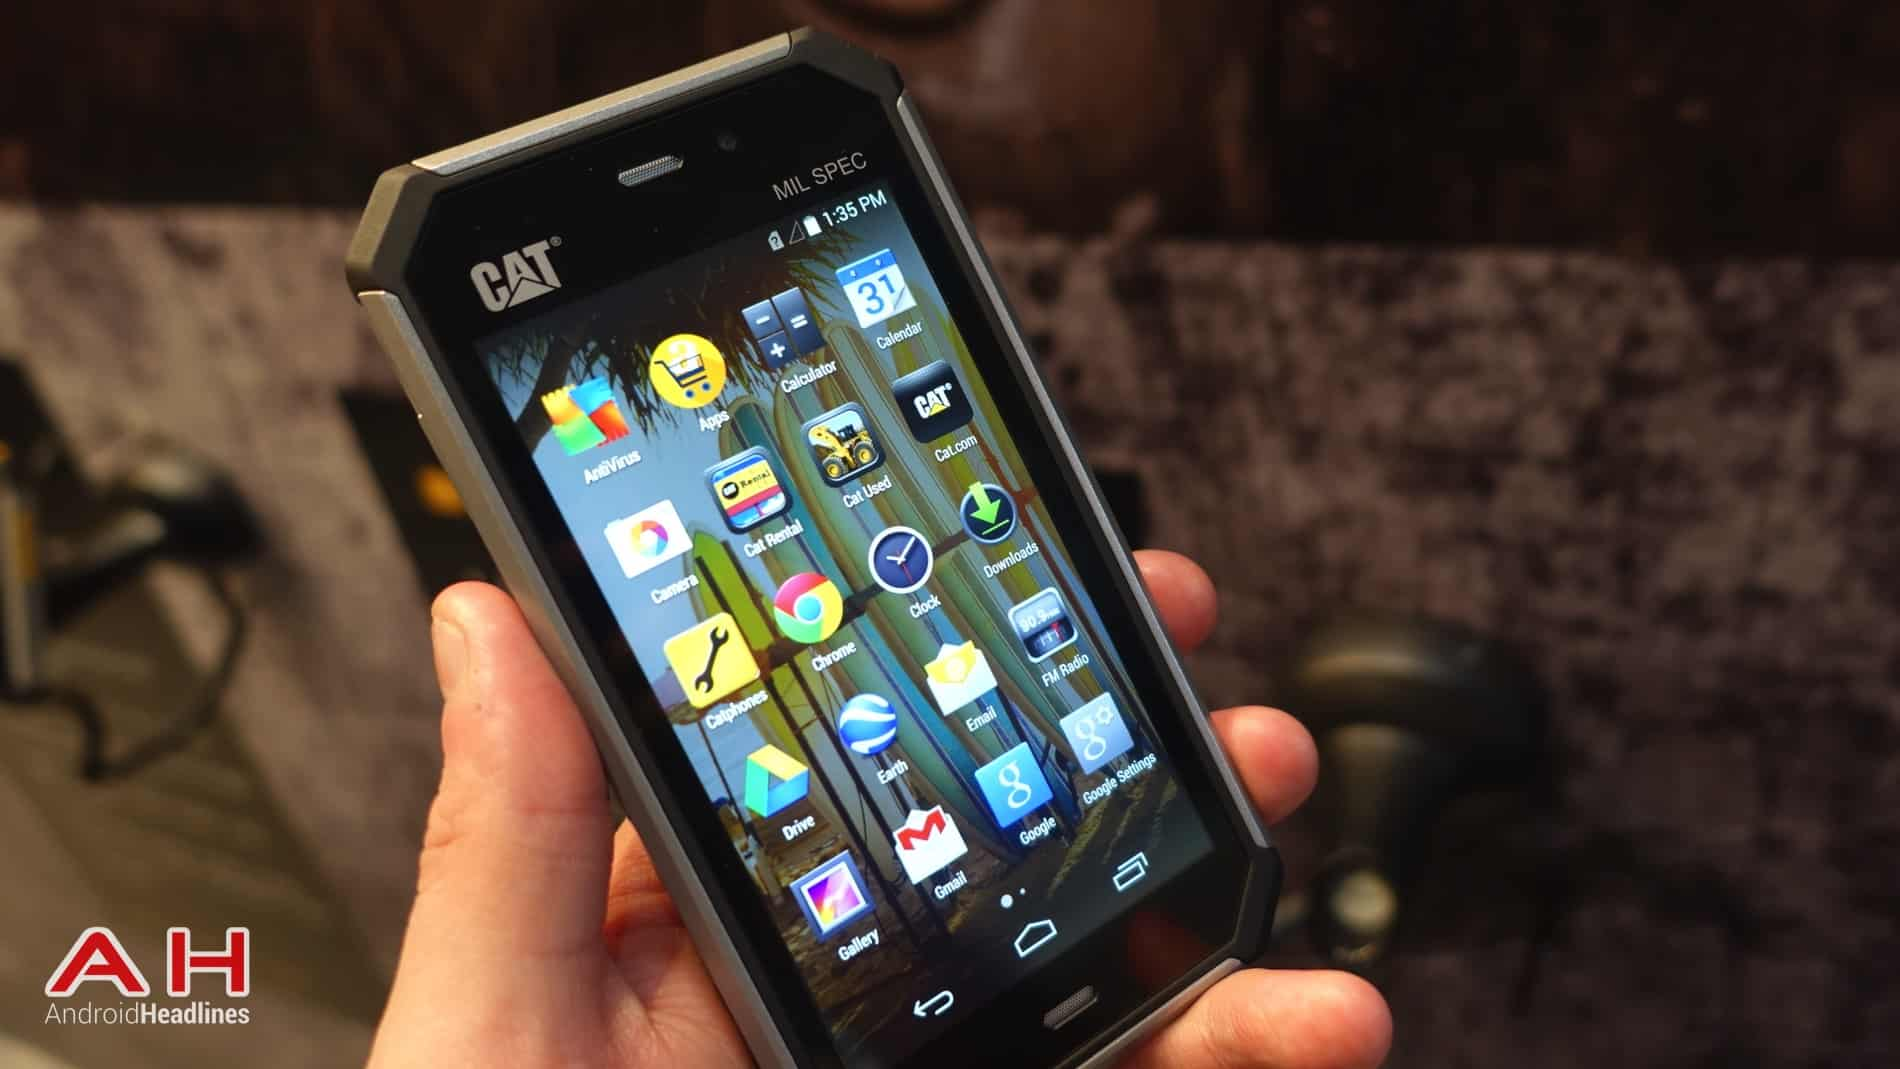 Cat S50 Rugged Smartphone Confirmed For Verizon